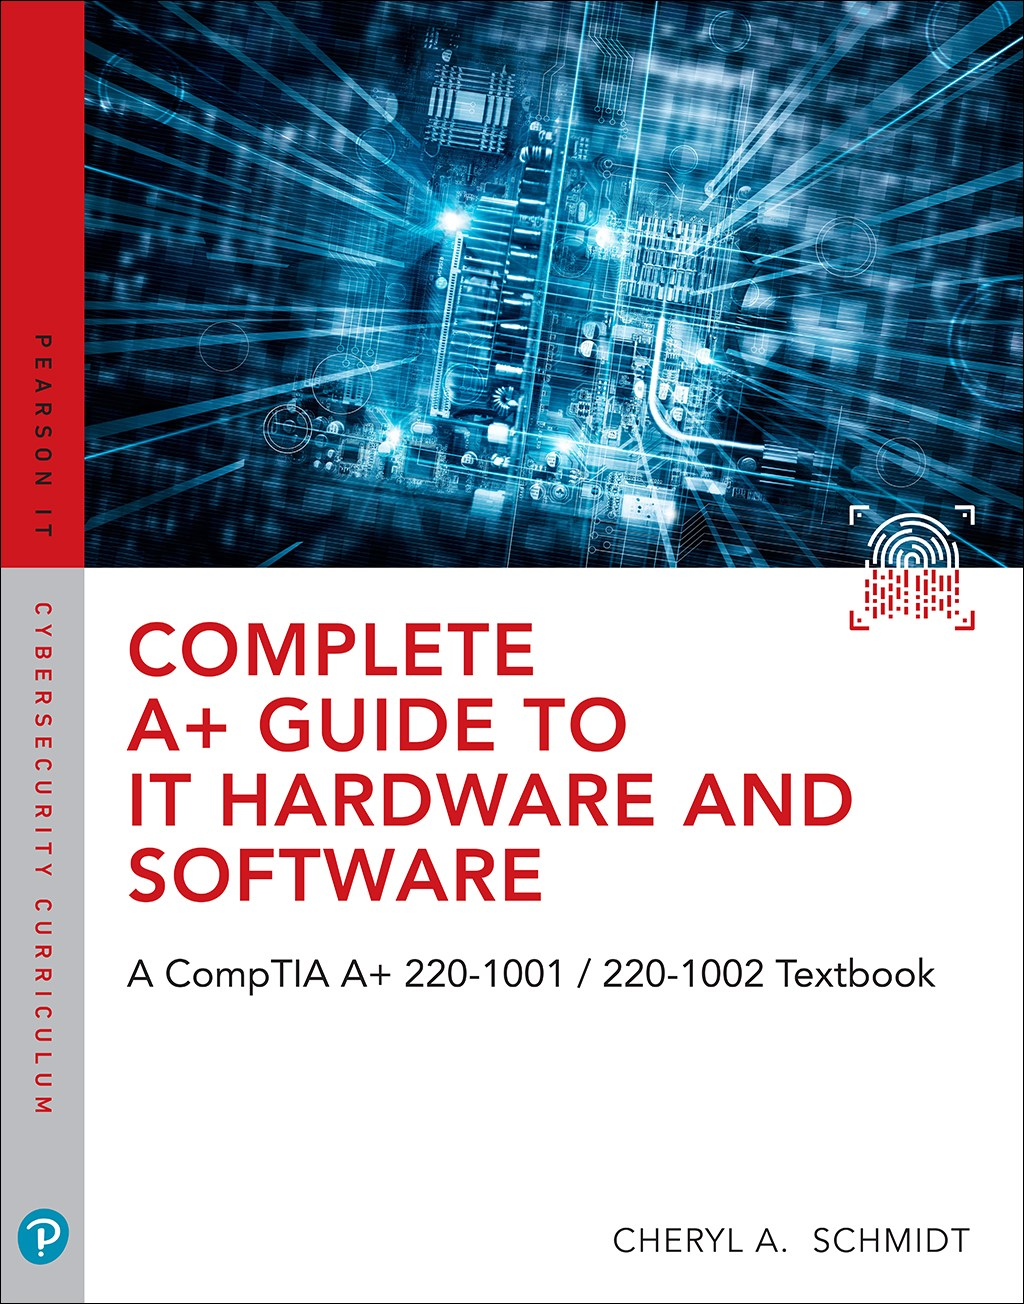 Complete A+ Guide to IT Hardware and Software: A CompTIA A+ Core 1 (220-1001) & CompTIA A+ Core 2 (220-1002) Textbook, 8th Edition